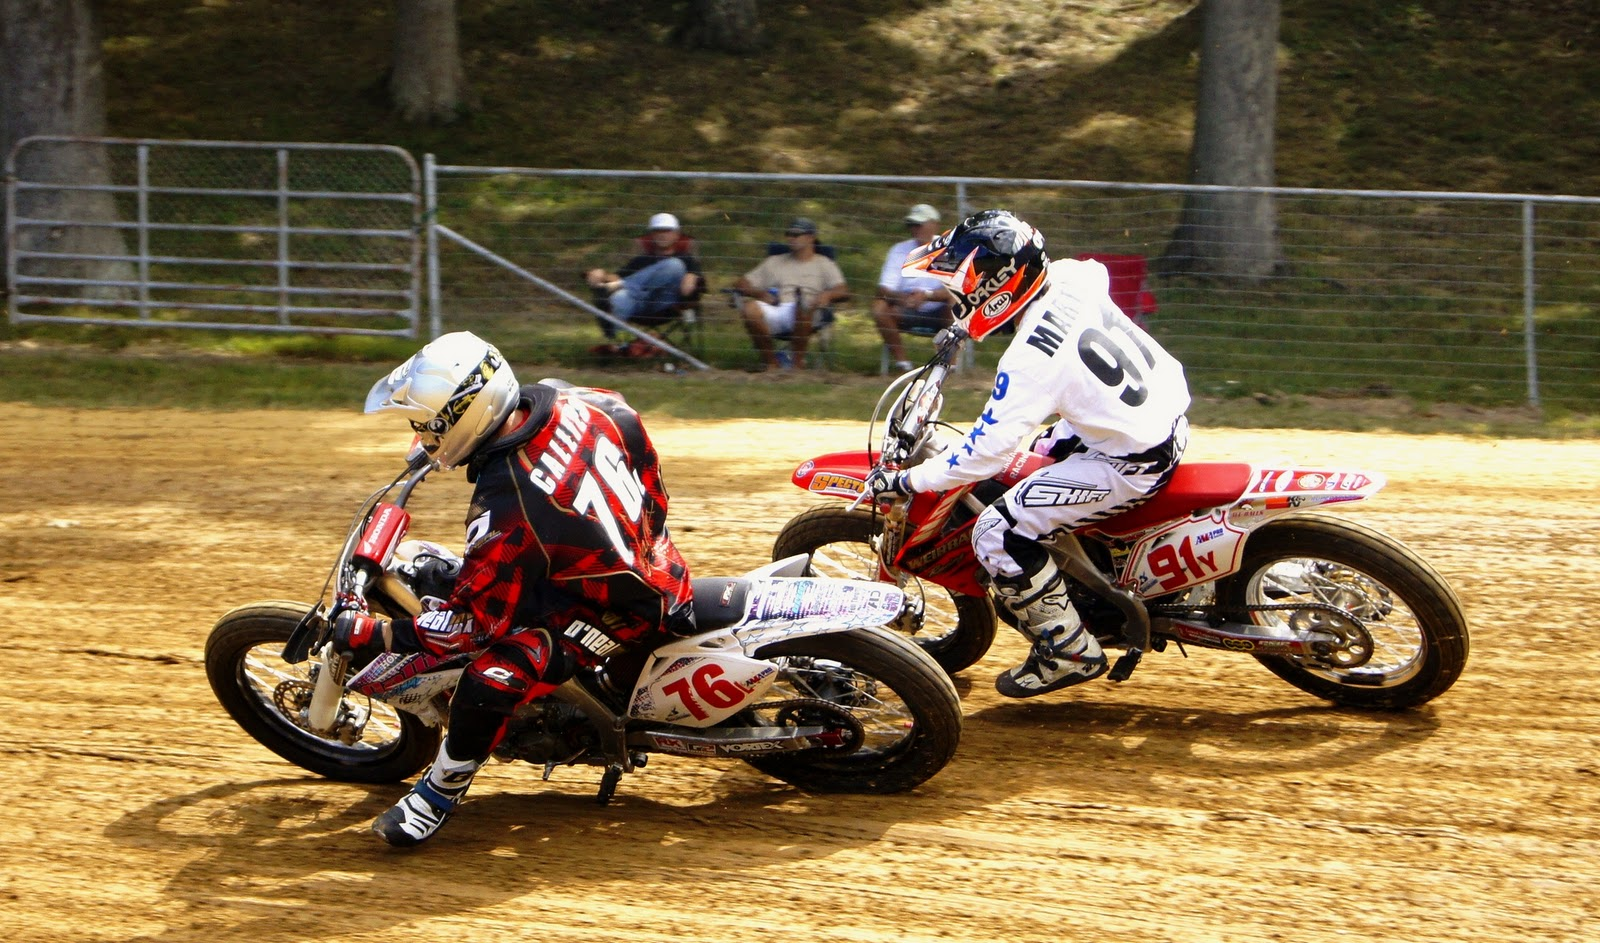 ama single personals Ama pro racing have released a complete rulebook for the 2016 pro flat track series, with changes focused on clarifying equipment standards for twins and singles.